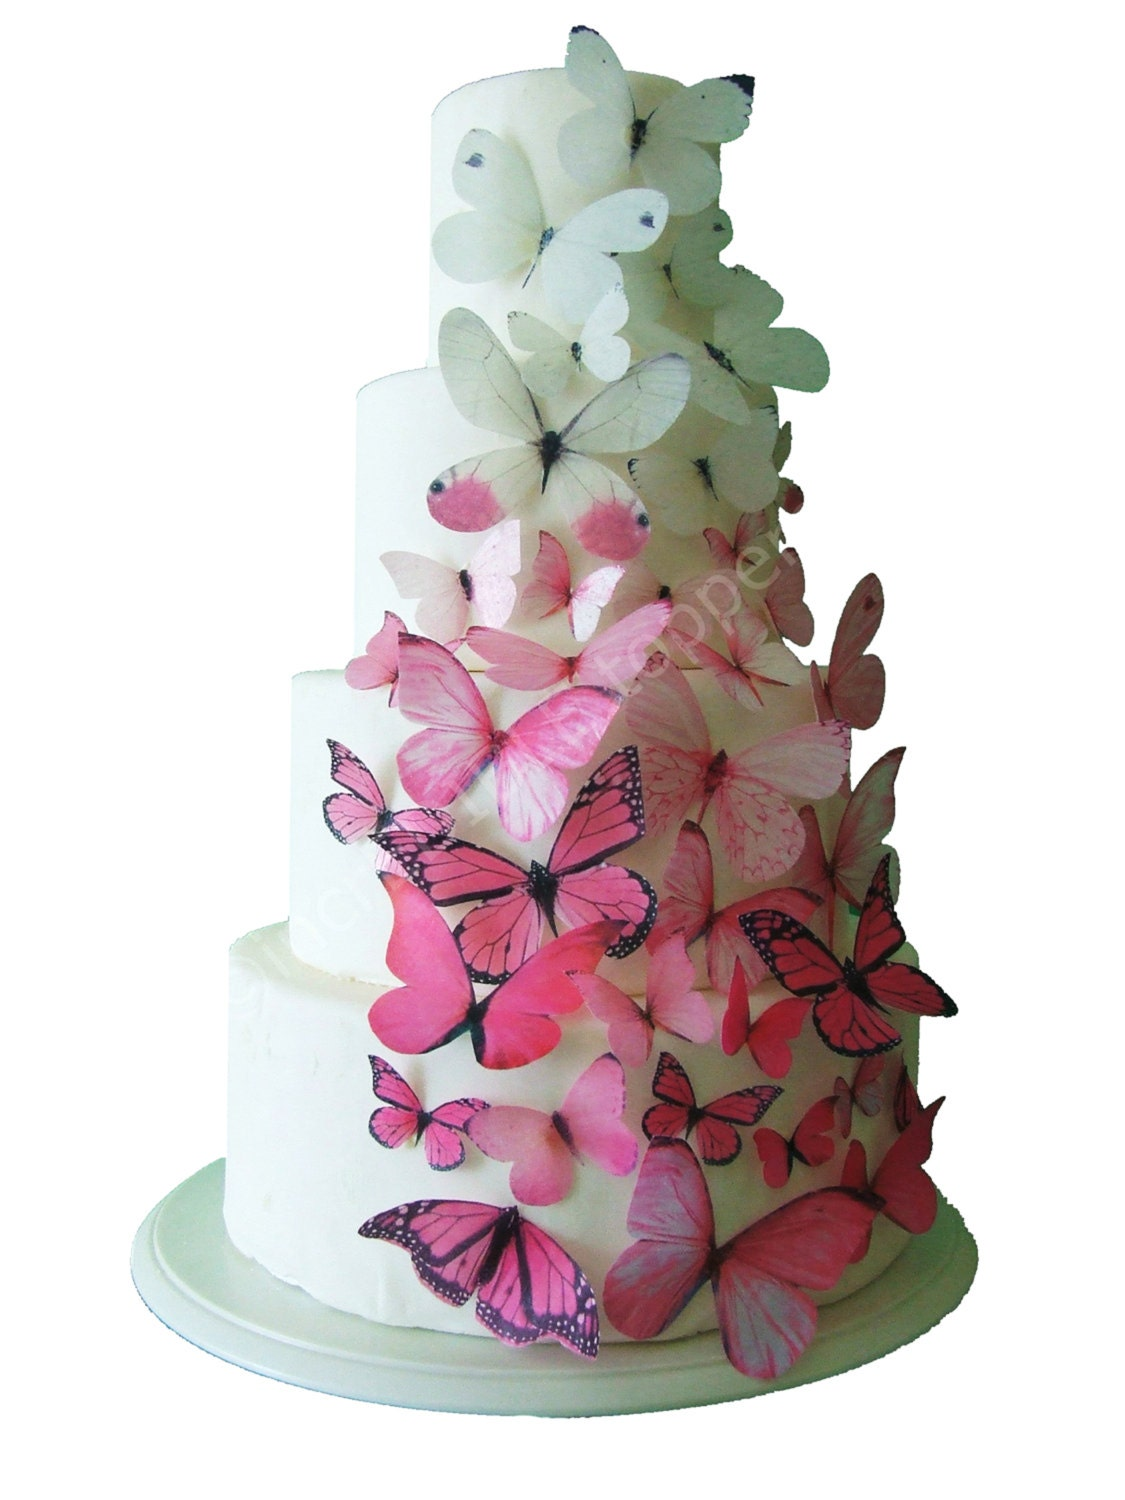 How To Make Edible Butterflies For Cakes